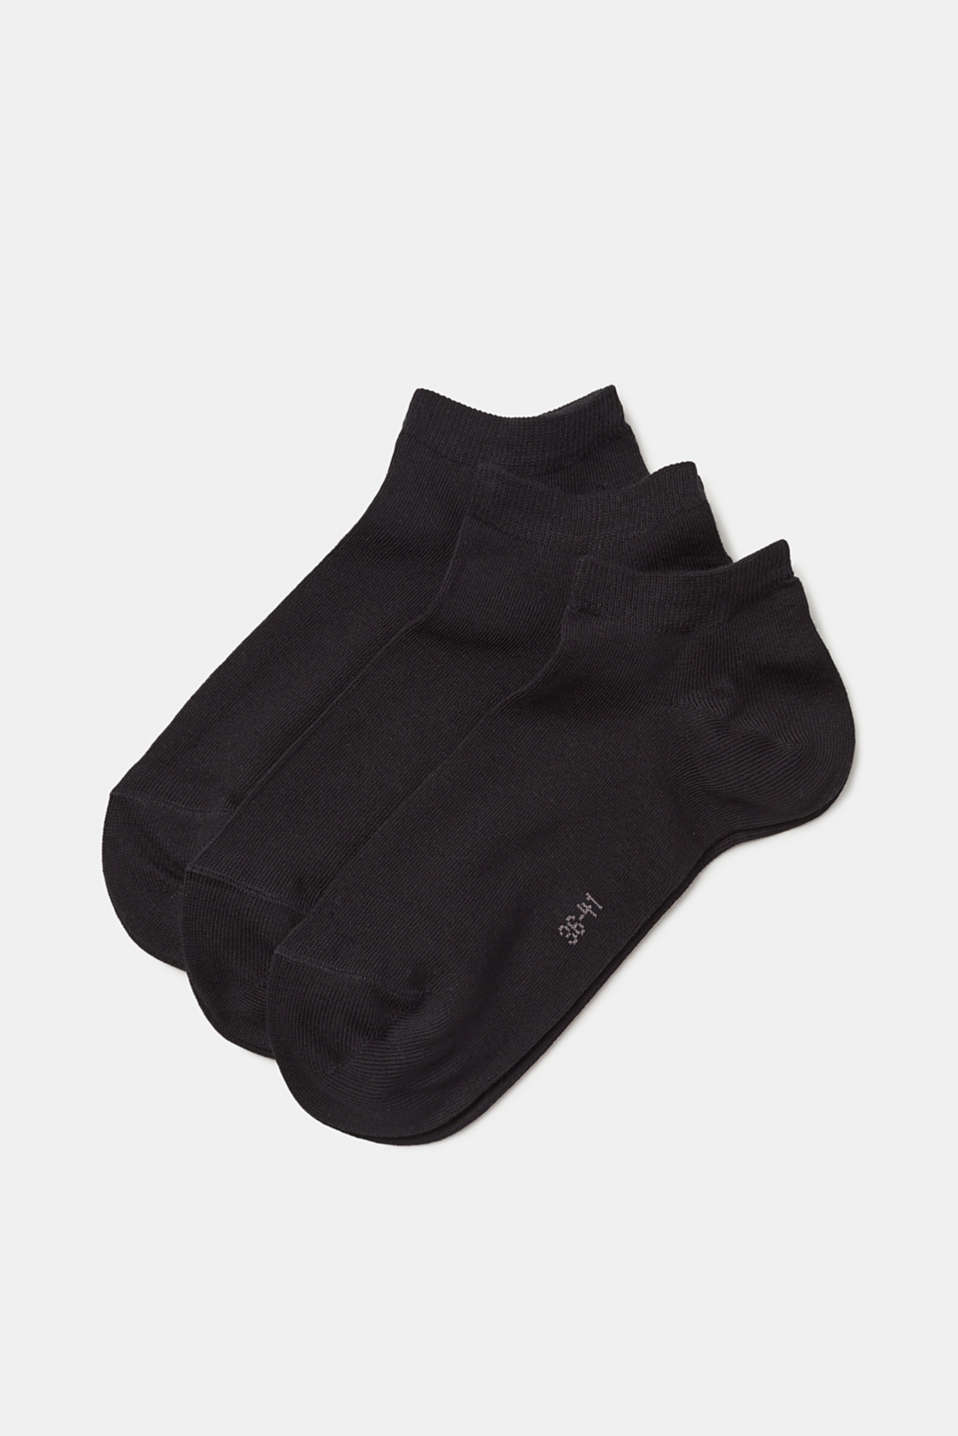 Esprit - 3-pack of blended cotton trainer socks